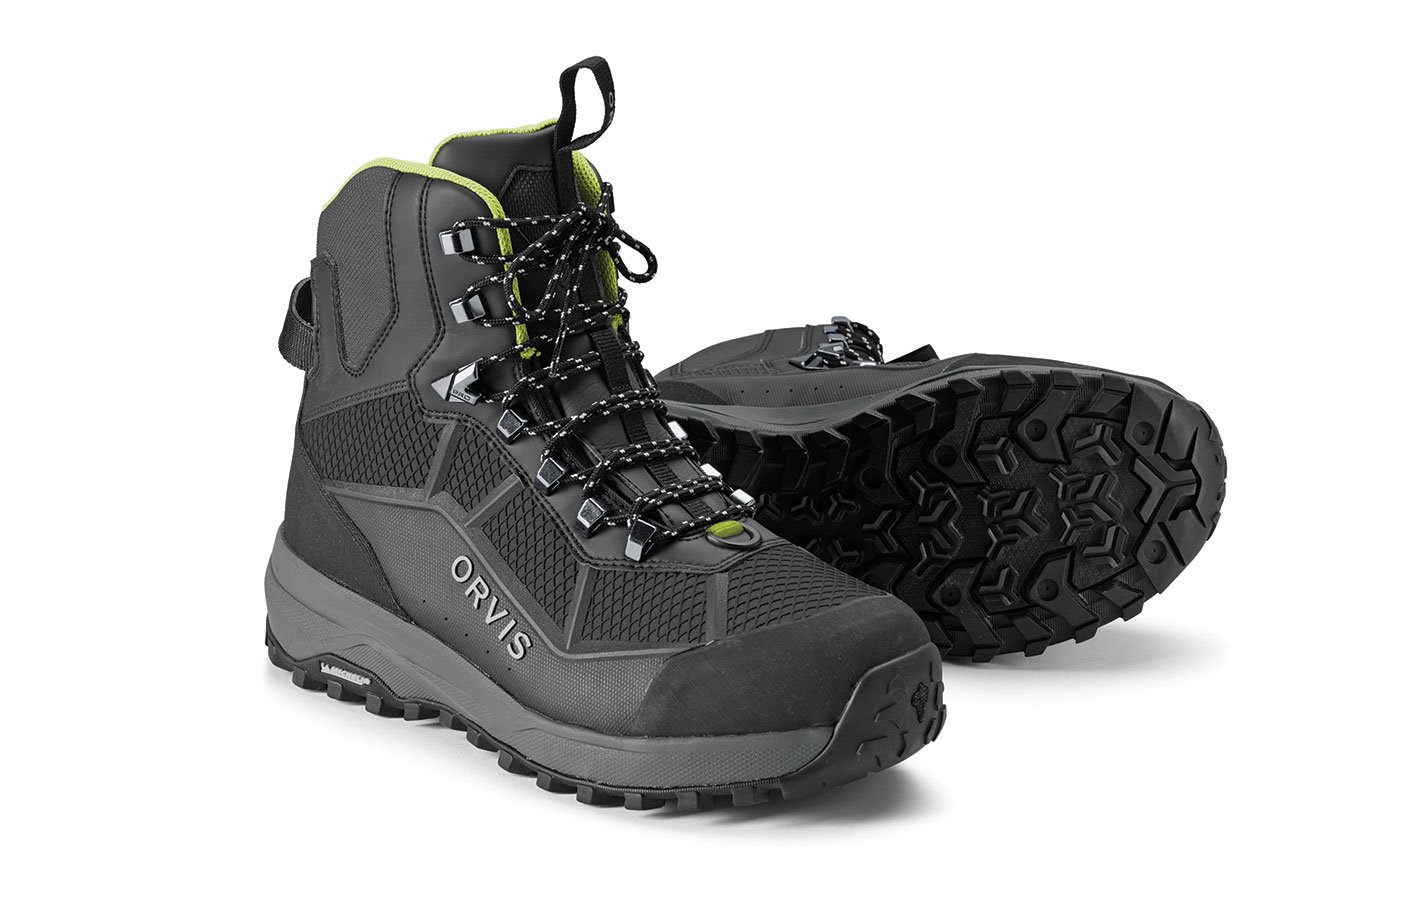 Orvis Michelin Pro Wading Boots